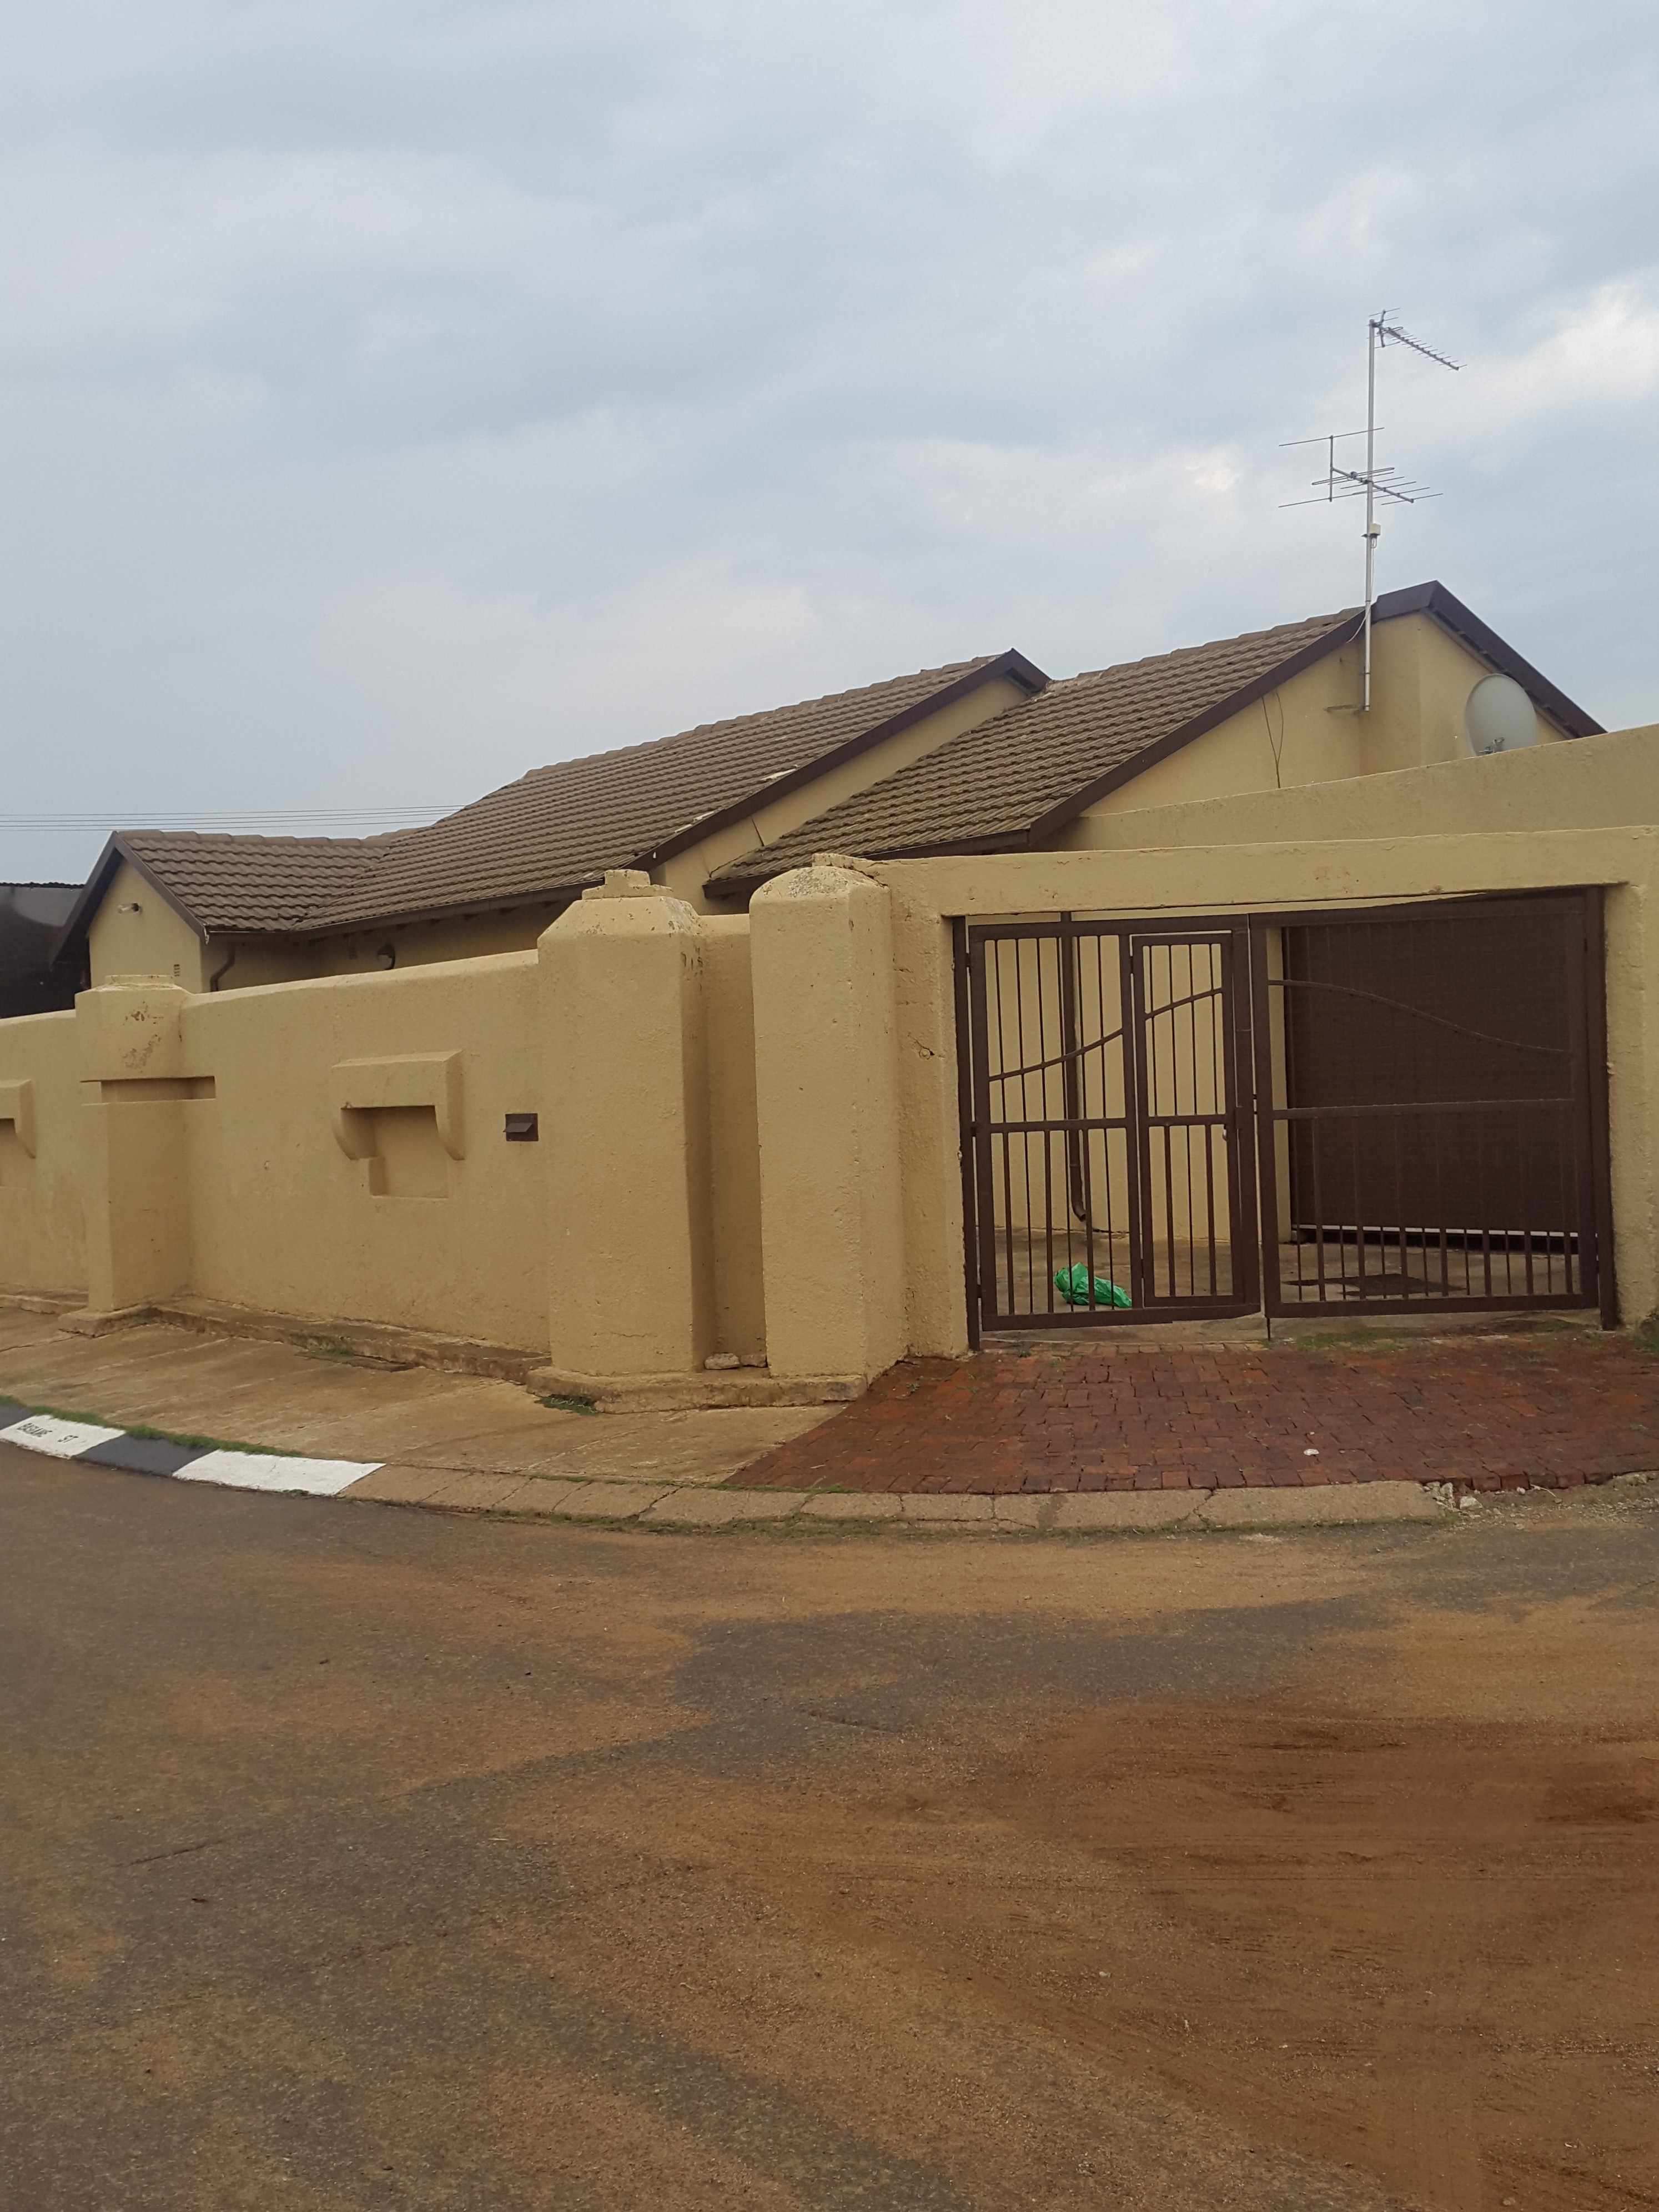 4 bedroom soweto dream home for 4 bedroom dream house